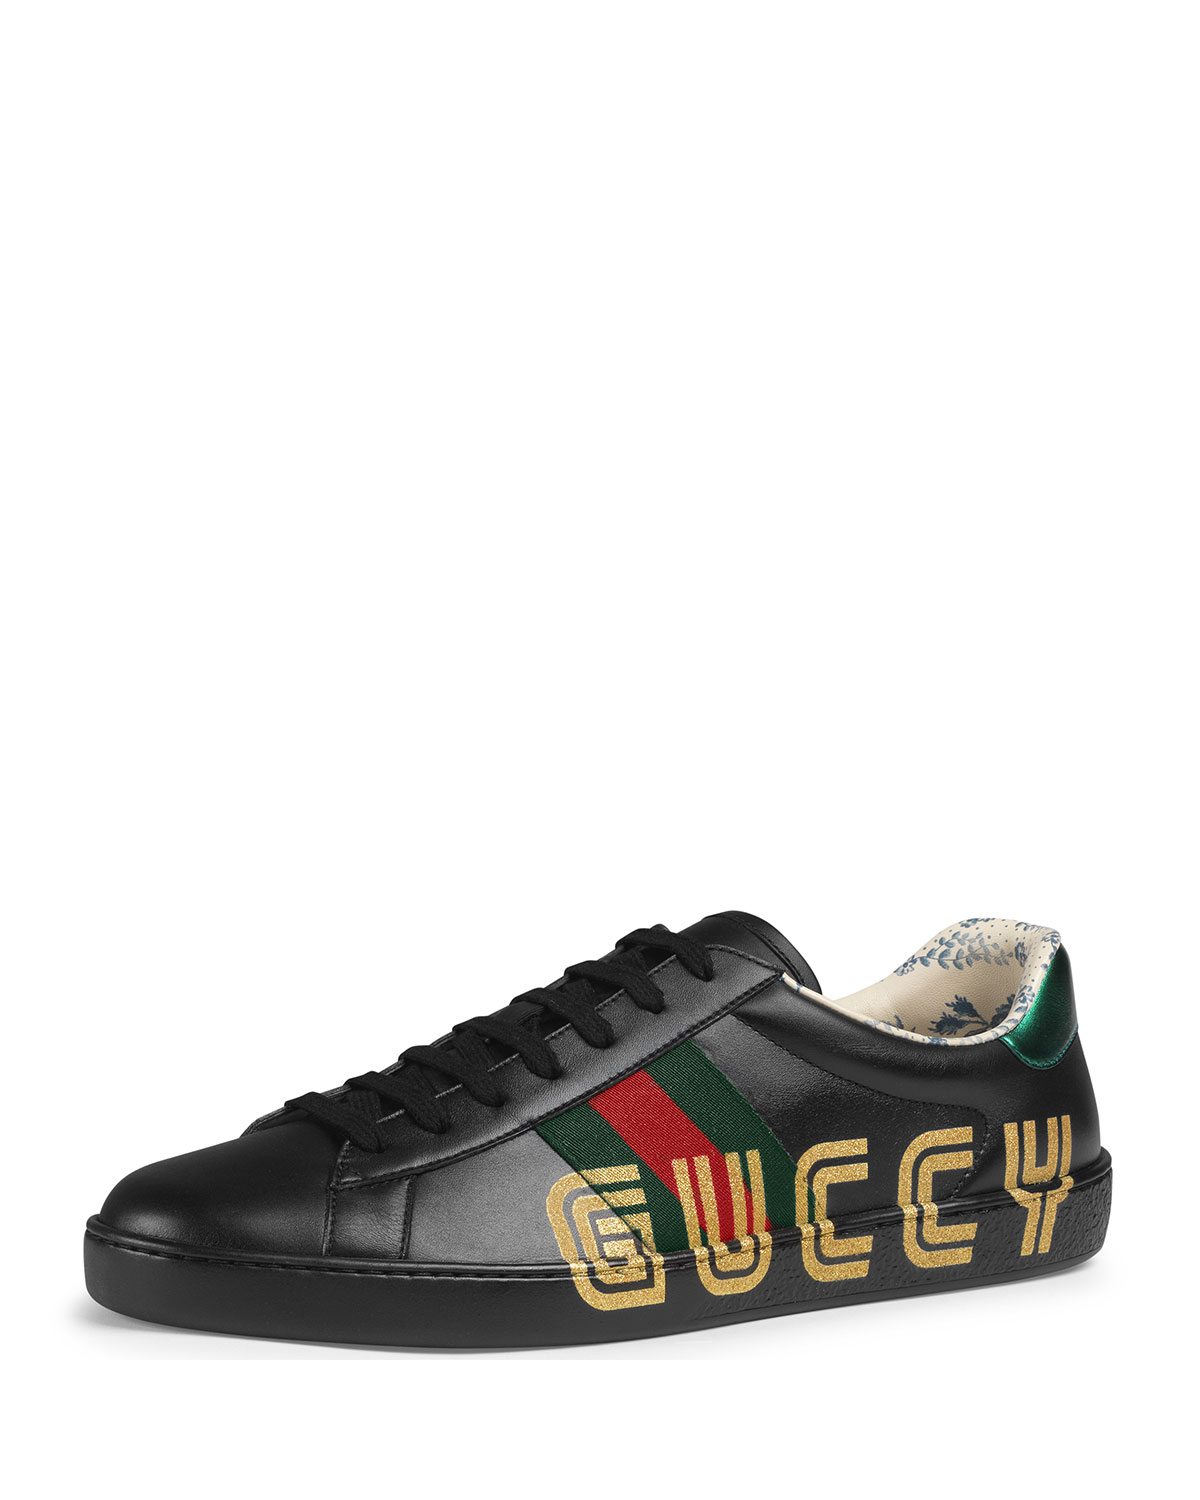 5a6b61747 Gucci Ace Sneaker with Guccy Print | Neiman Marcus